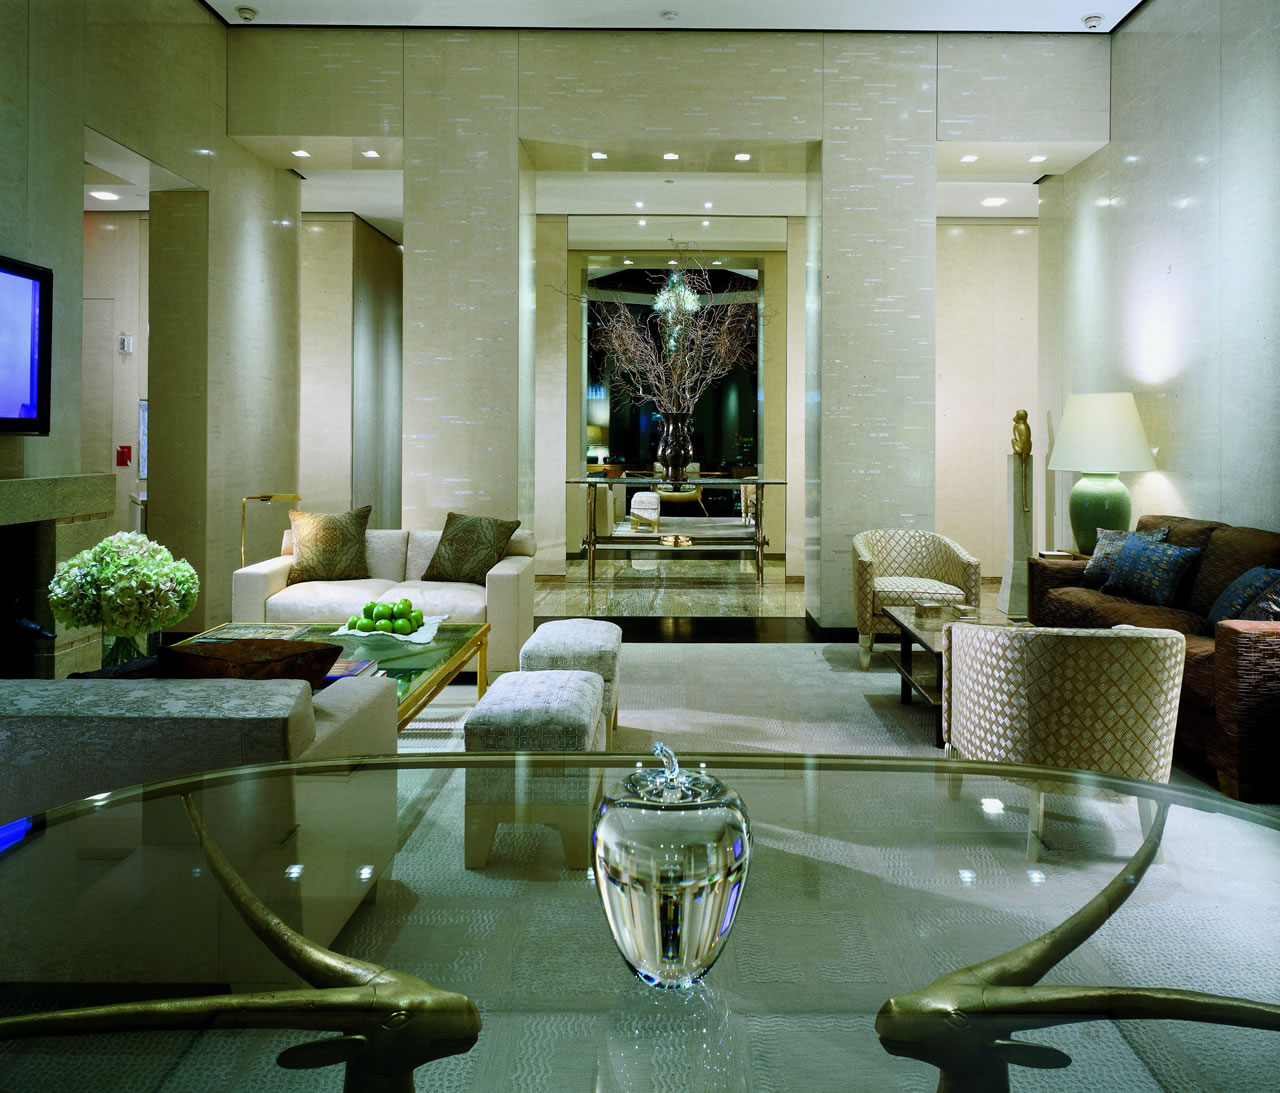 Most expensive hotel suite in new york for Expensive hotel in new york